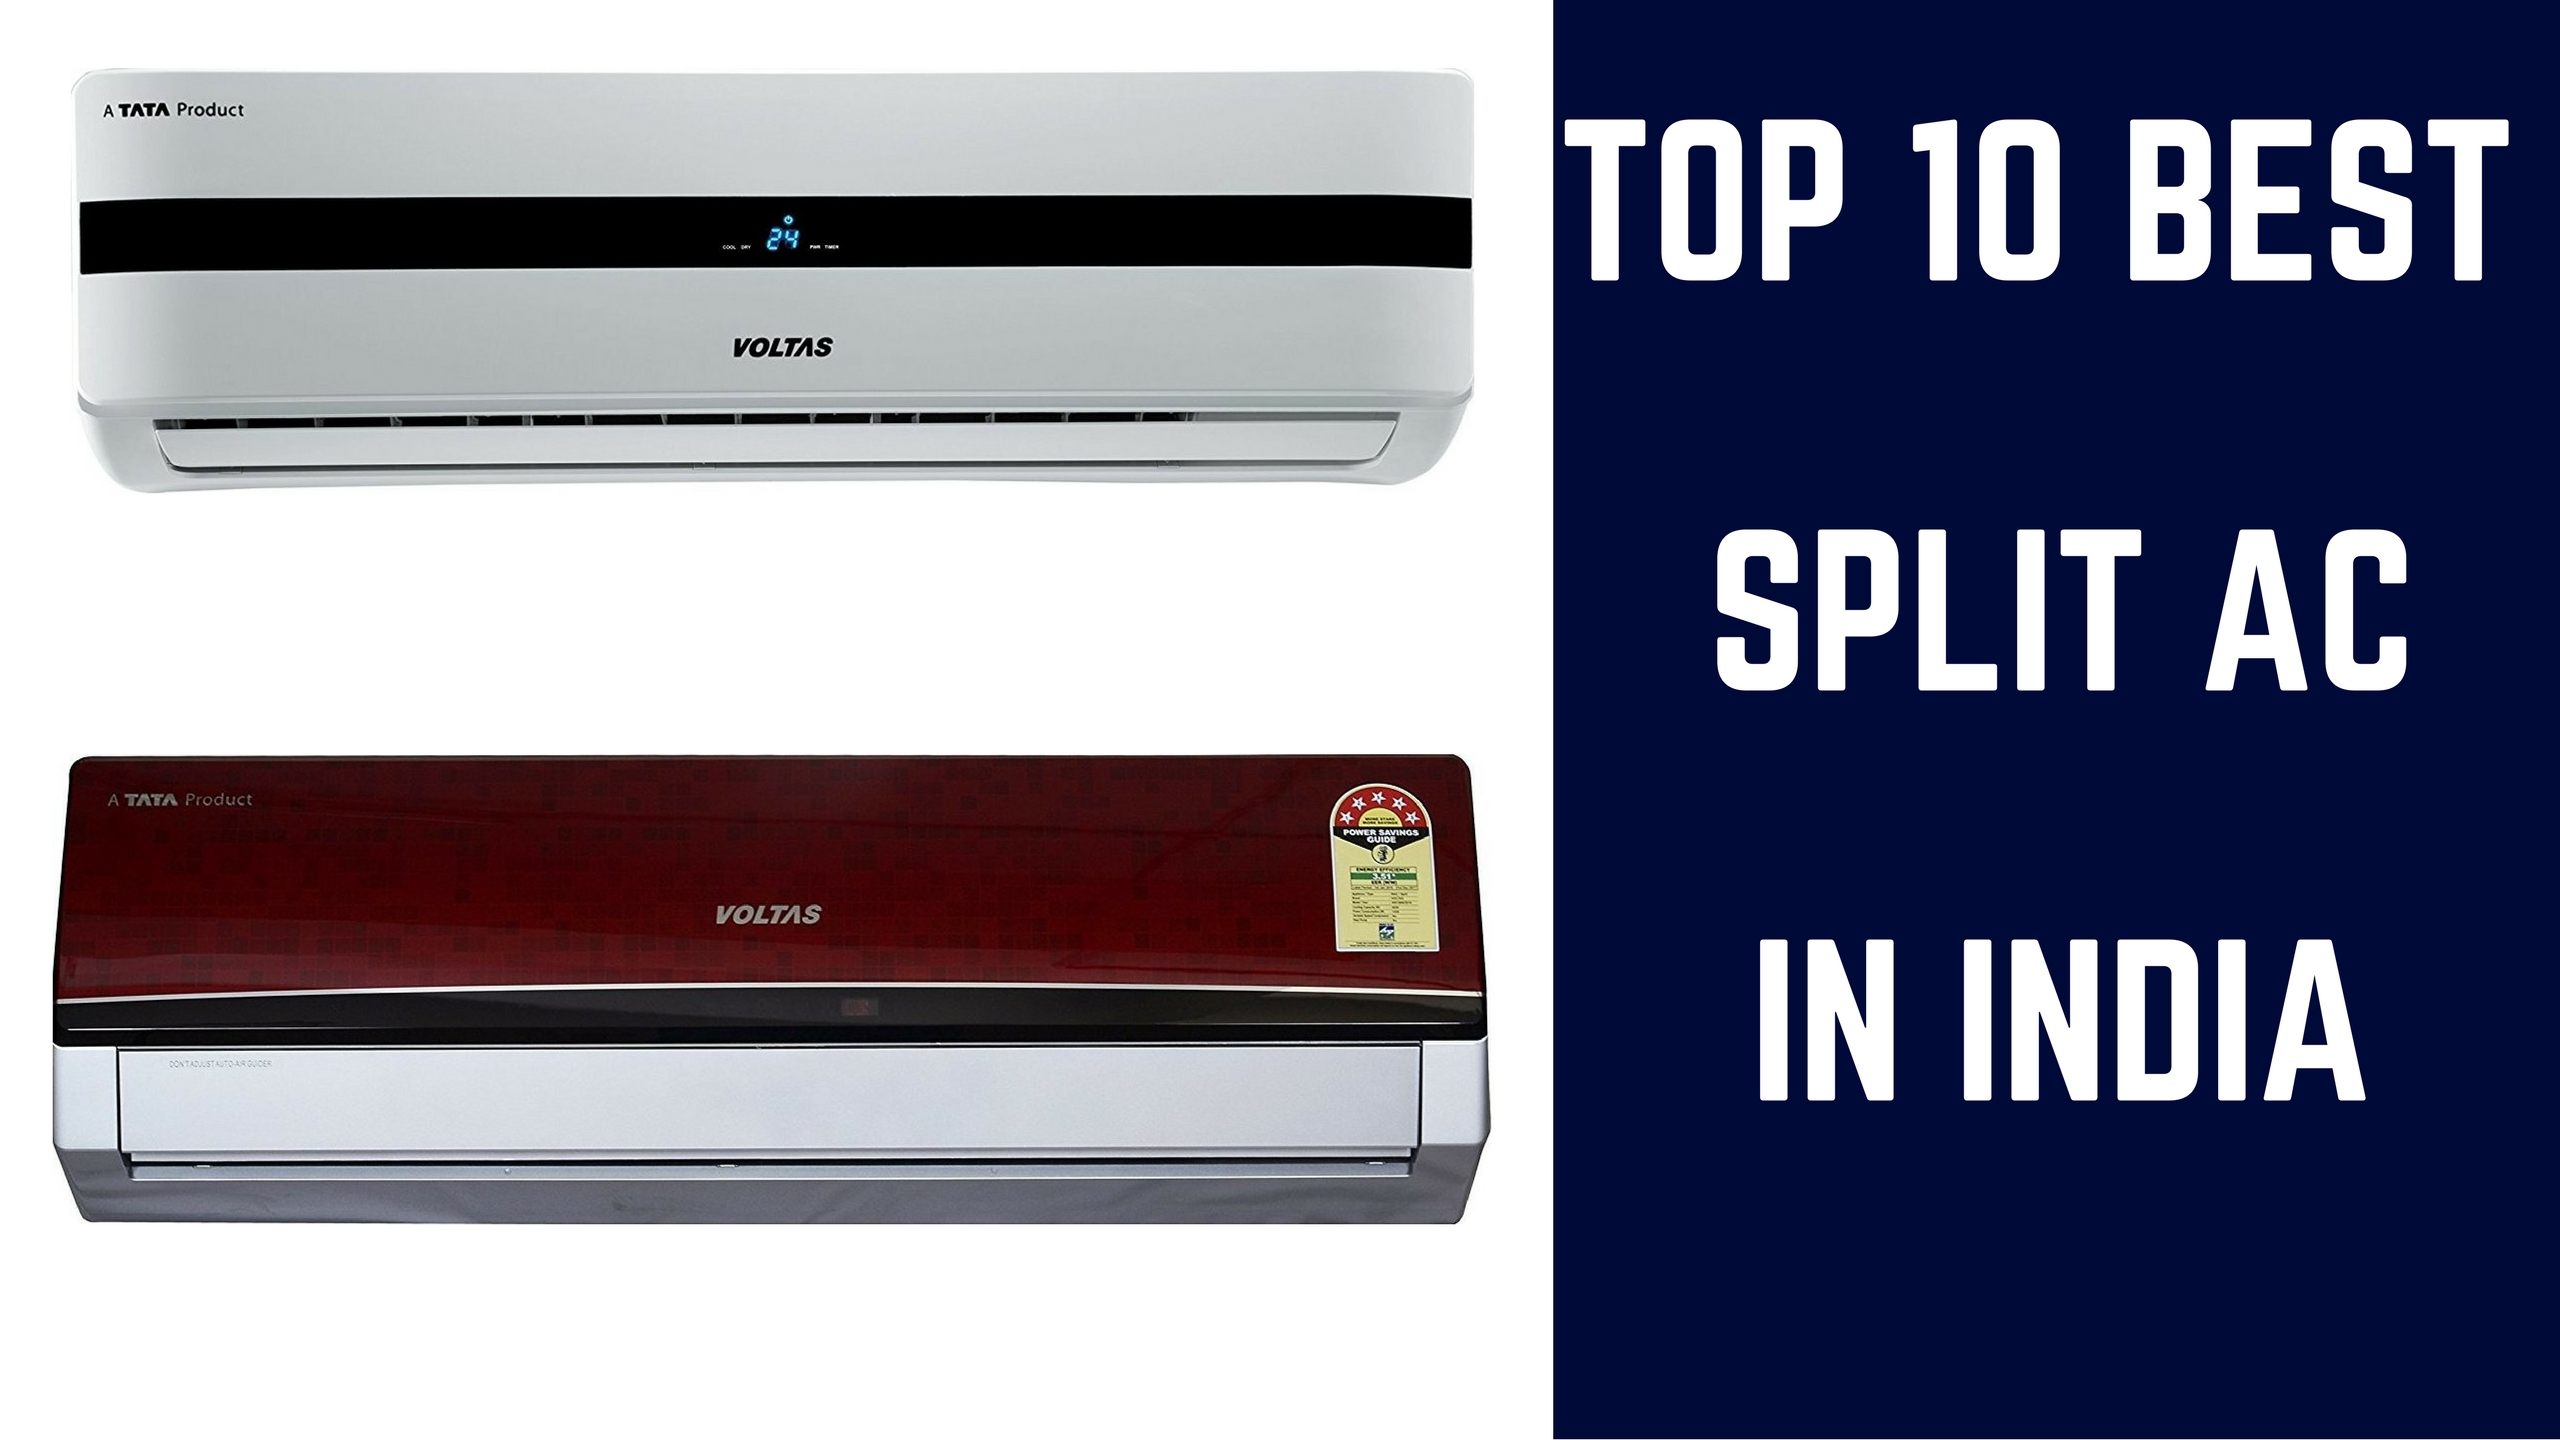 Top 10 Best Split AC In India